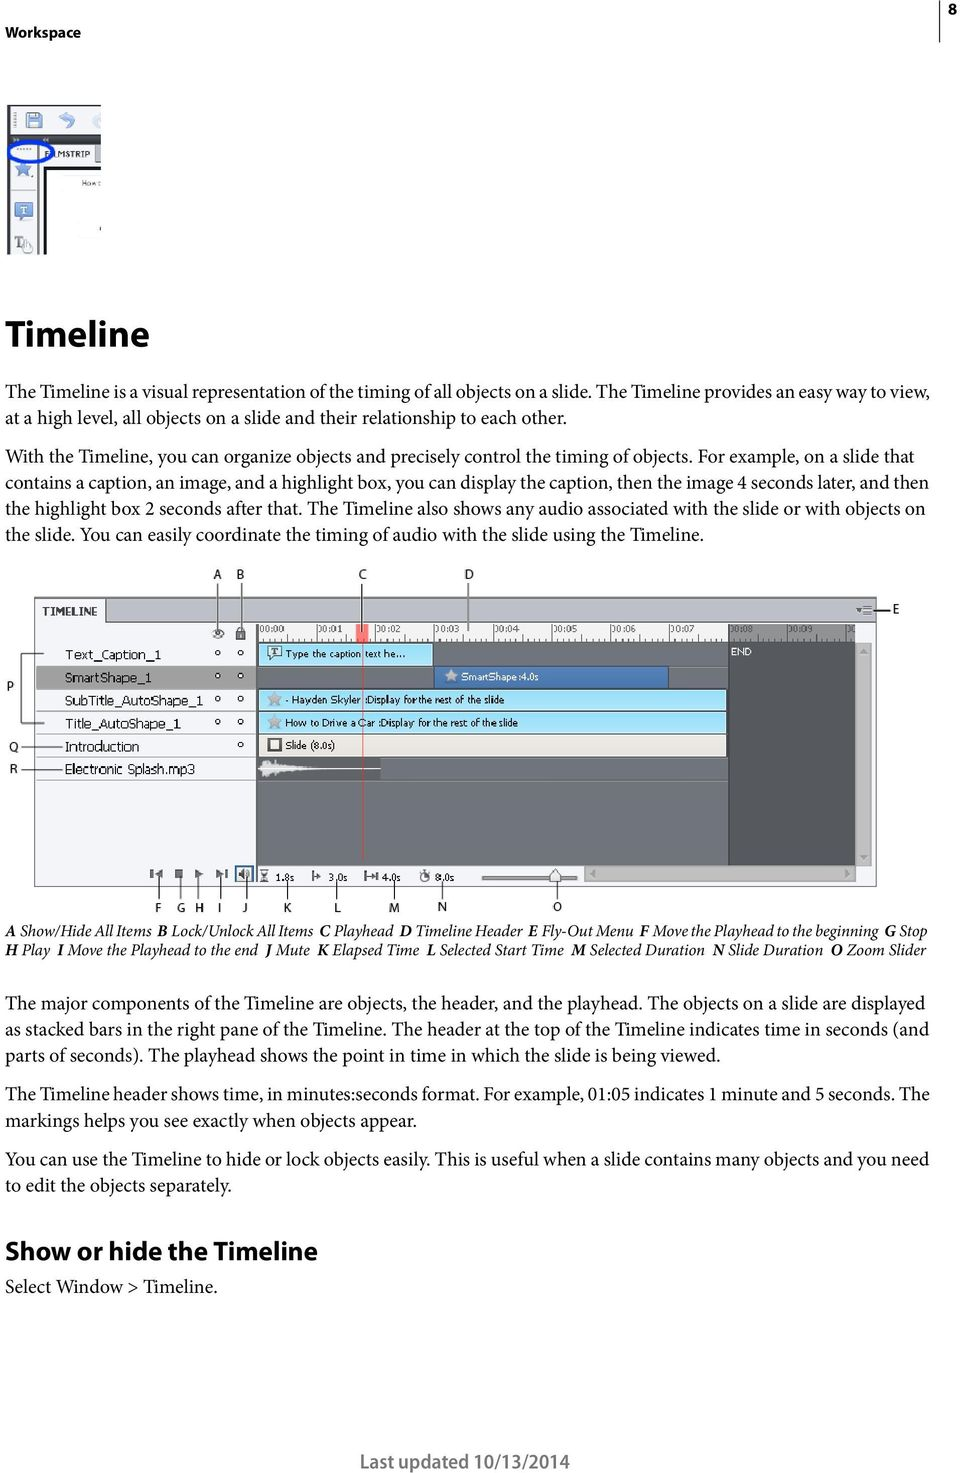 With the Timeline, you can organize objects and precisely control the timing of objects.